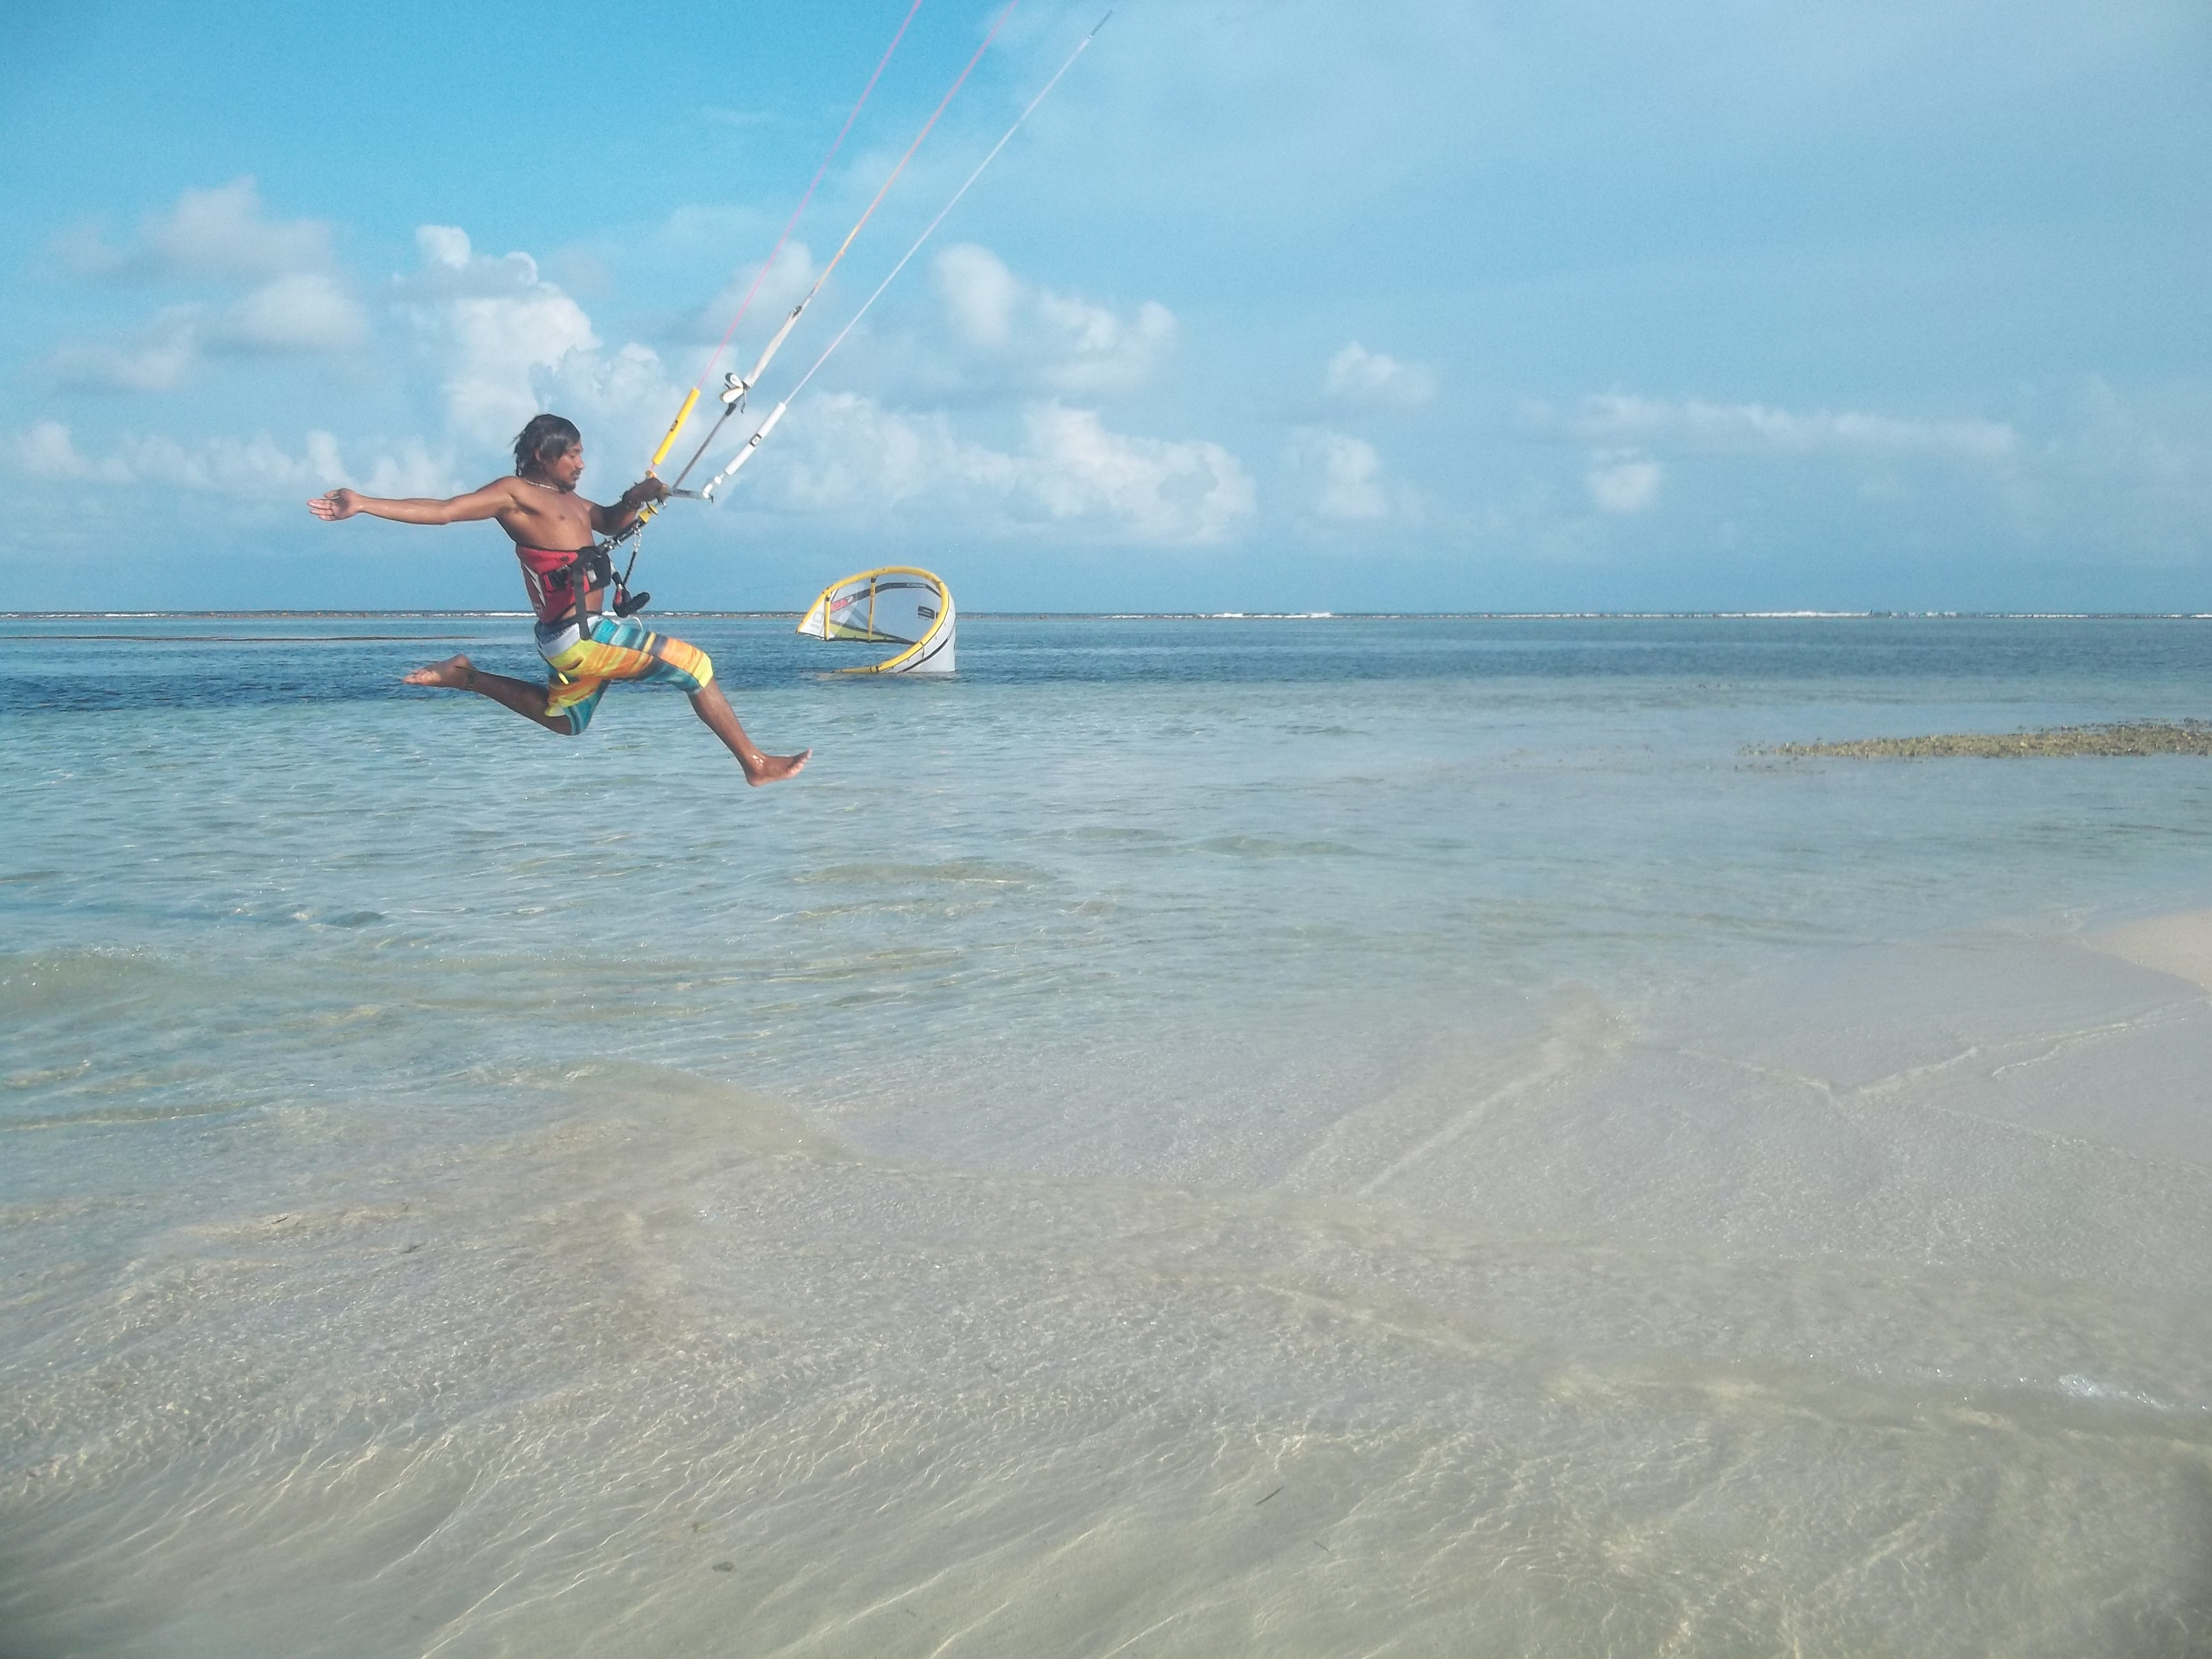 extreme sports kite sufing